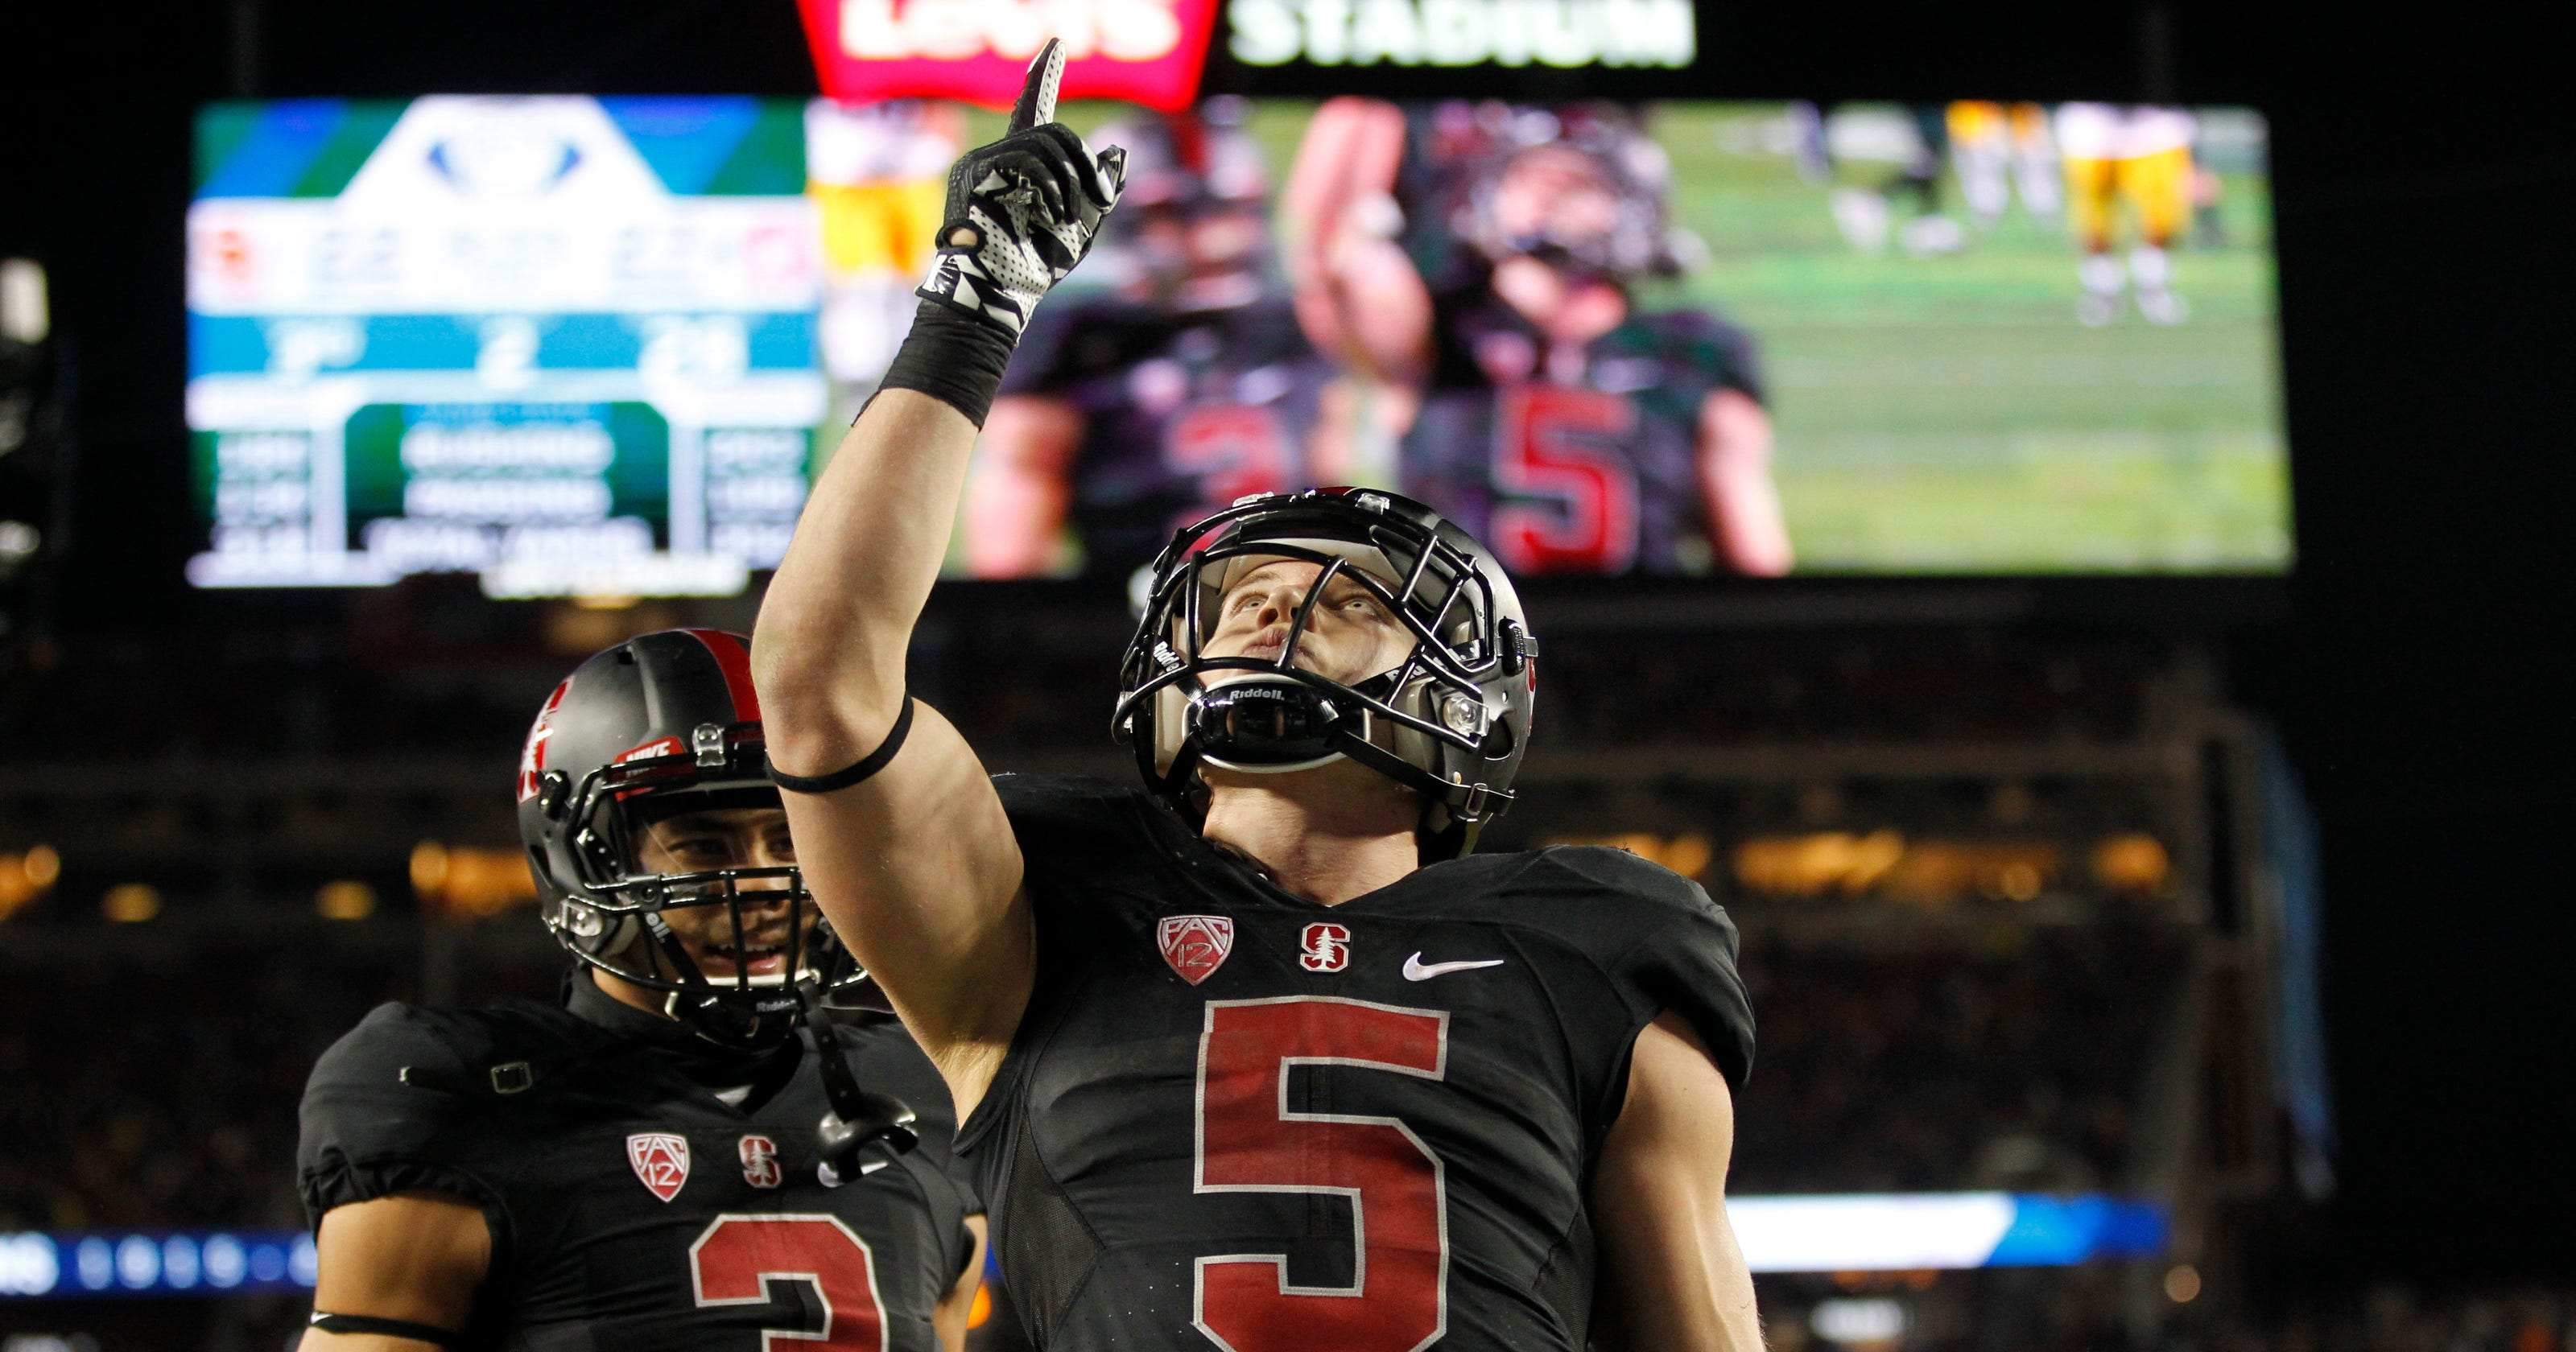 88aa048e8 Previewing Friday's college football bowl games